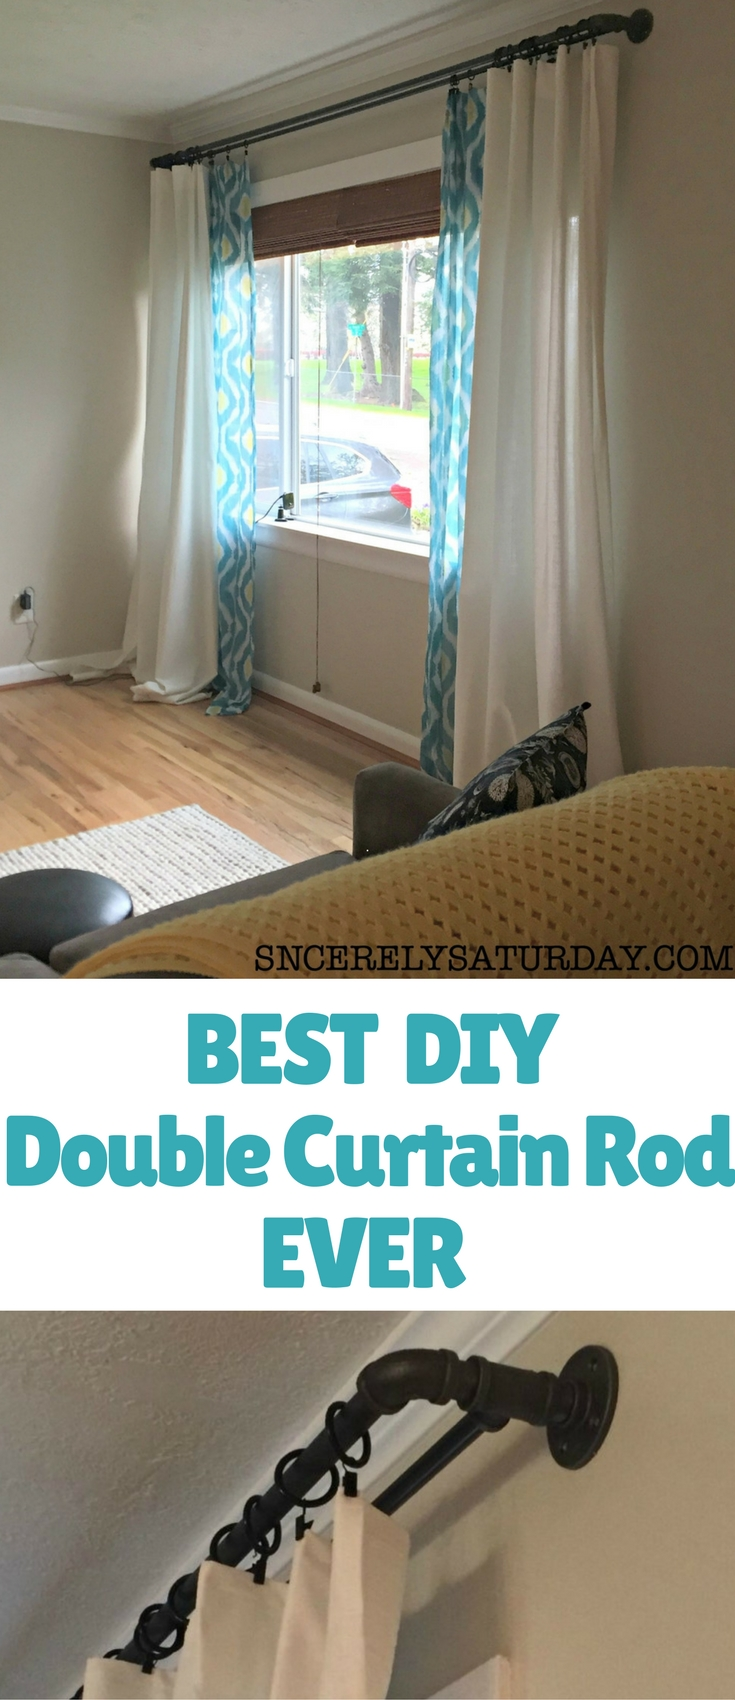 The overall durability of these curtain rods are amazing! I have little to no wear on the rods themselves and NO sagging whatsoever.